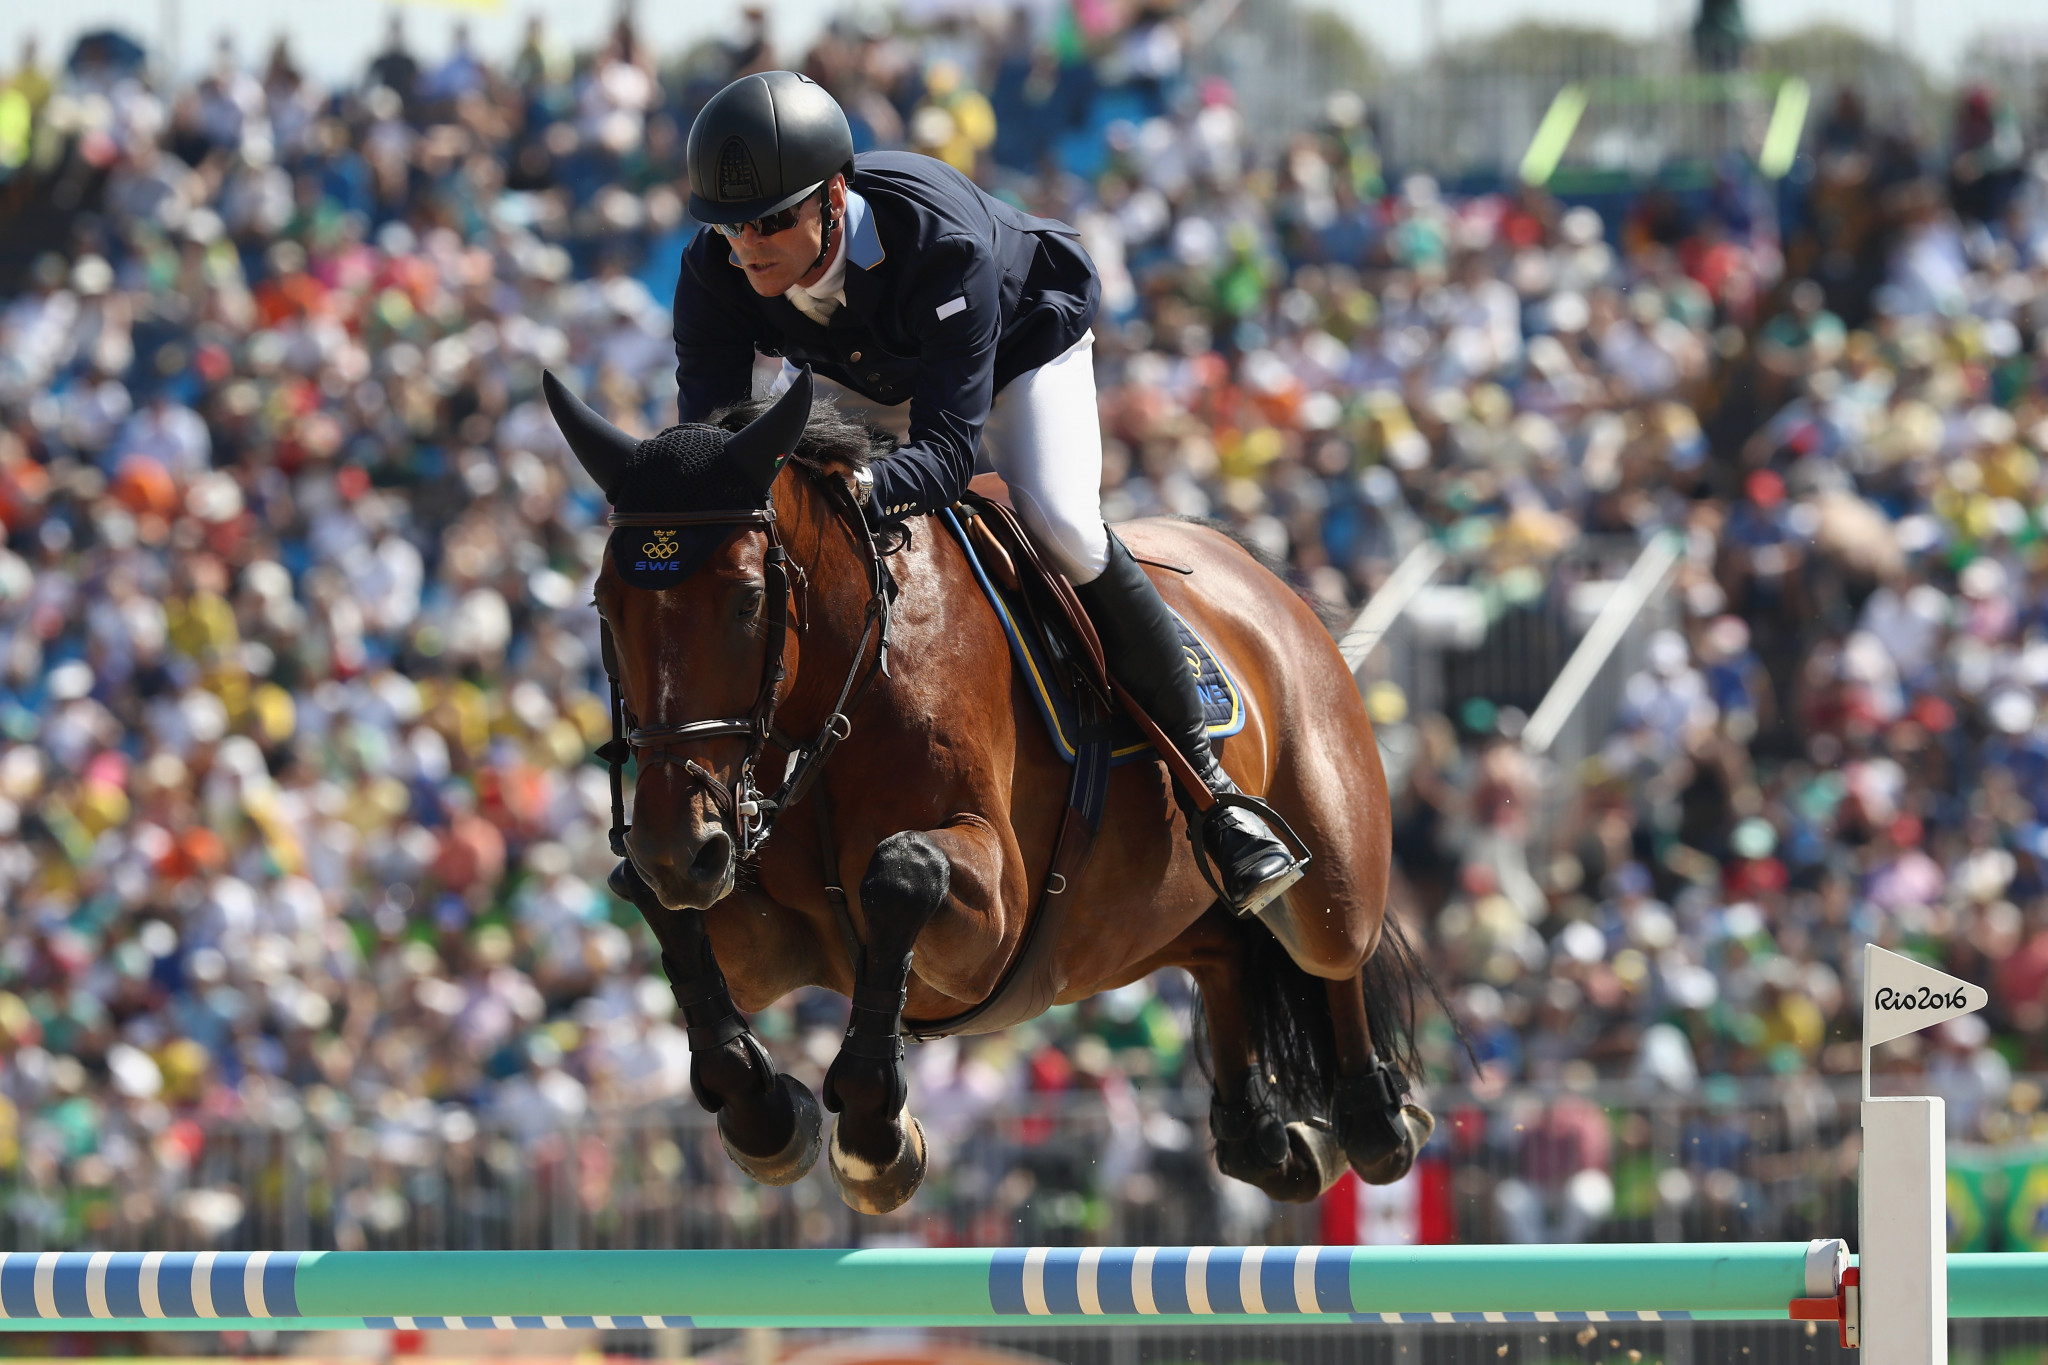 Double delight for Fredricson with GCL and GCT success in St Tropez